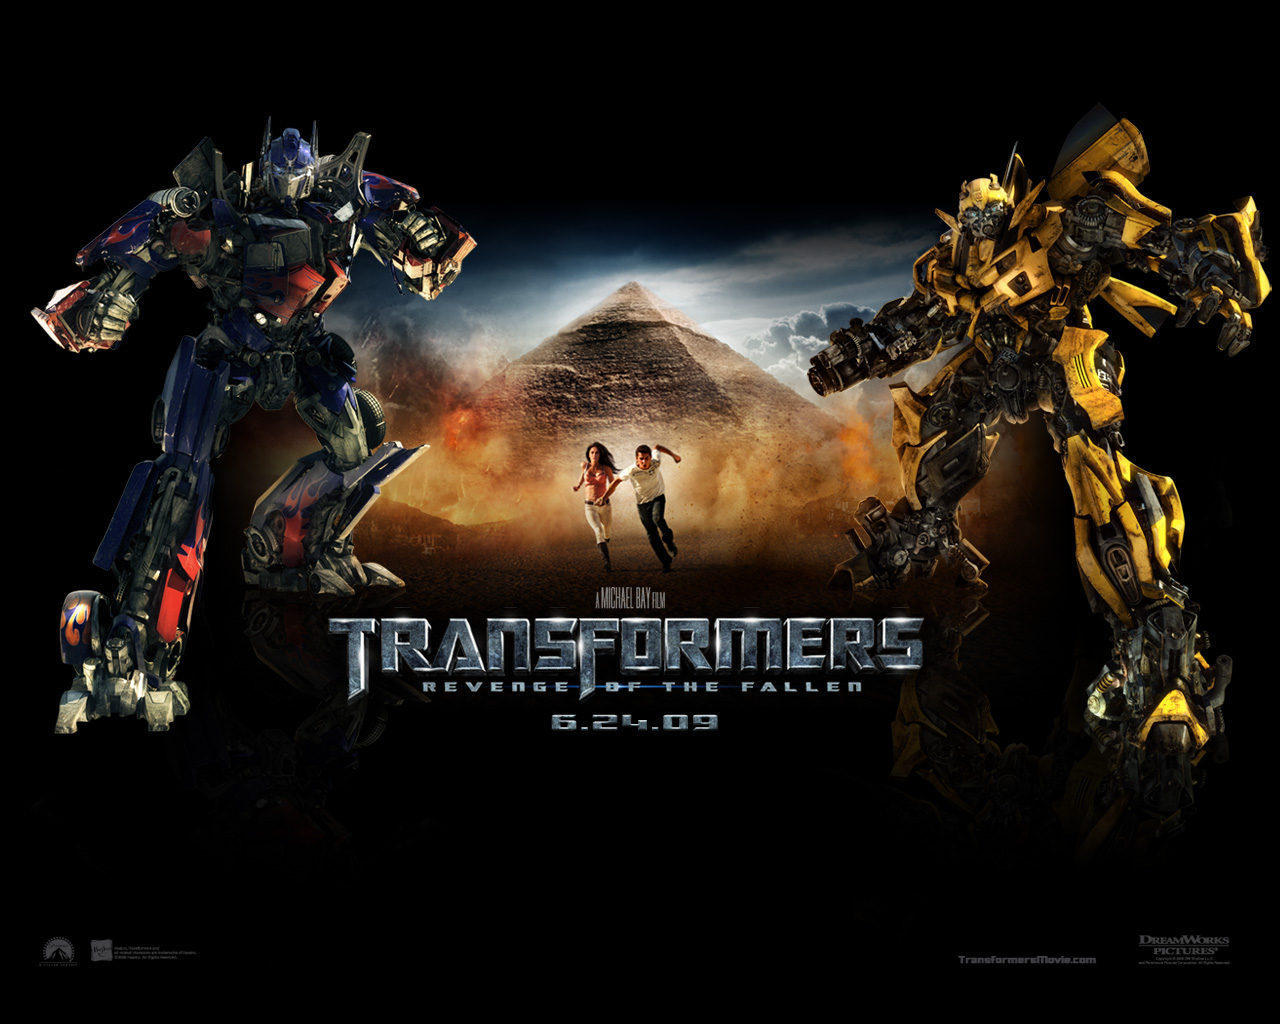 Transformers 2 images Transformers: Revenge of the Fallen ...